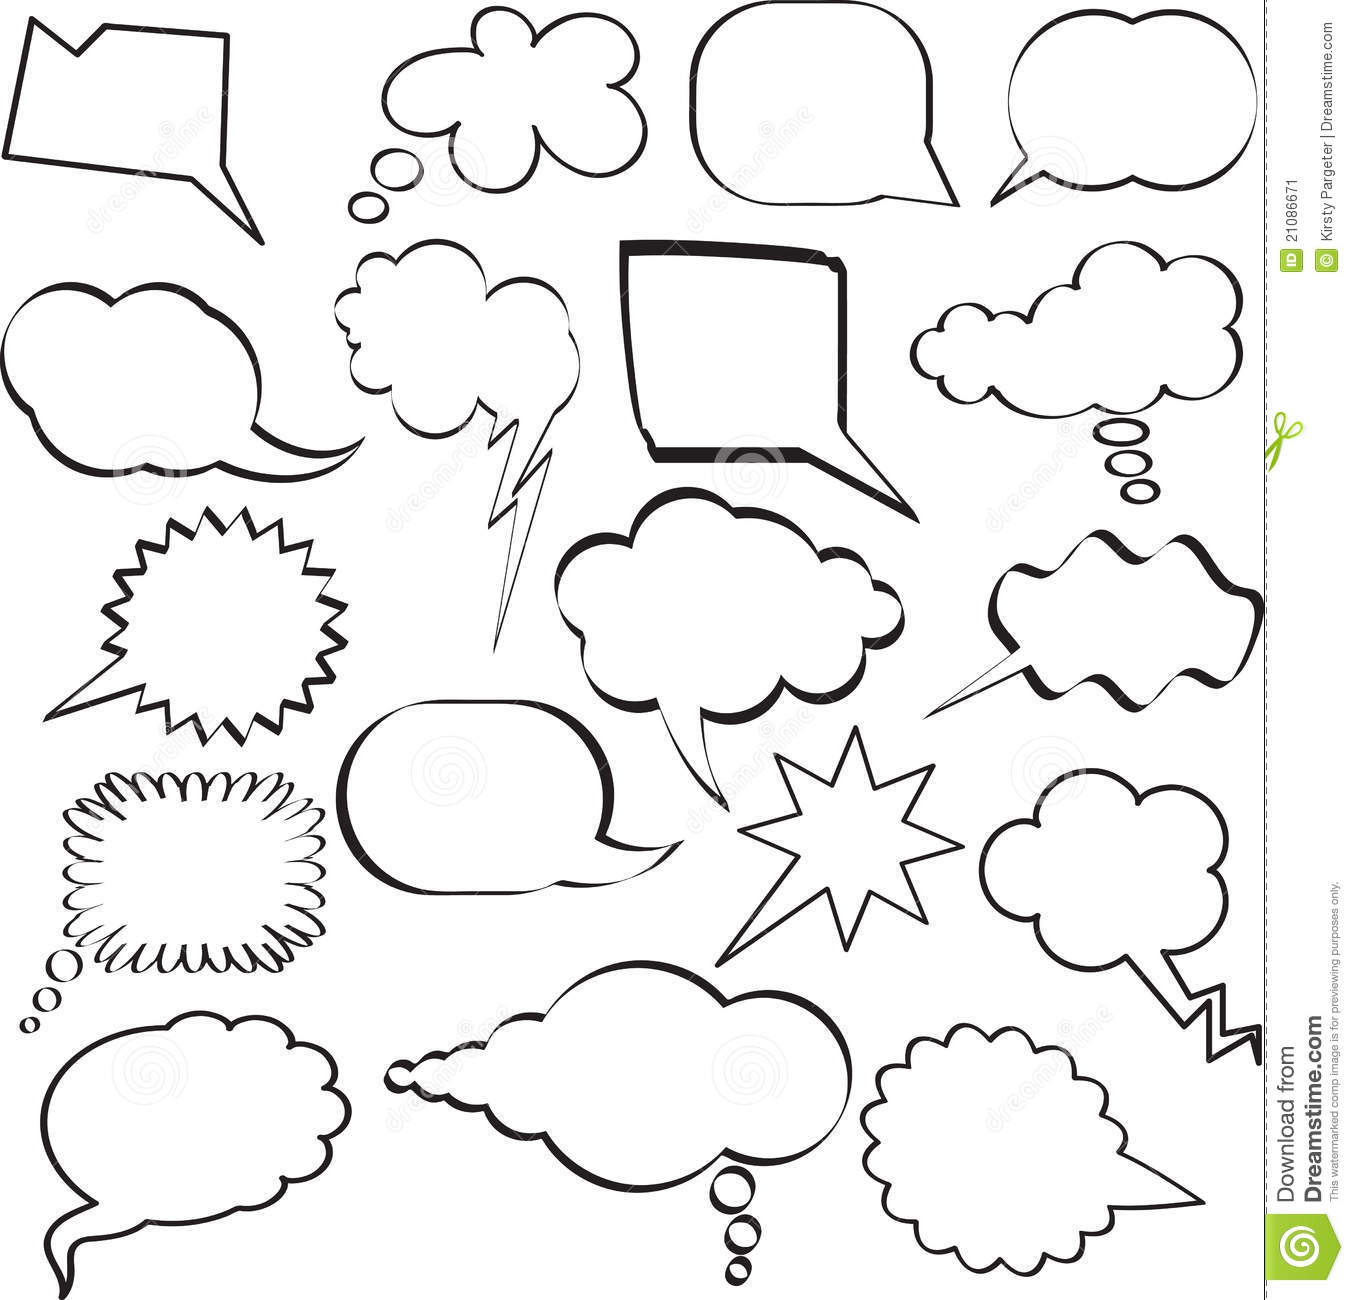 Large Collection Of Sketch Styled Speech Bubbles